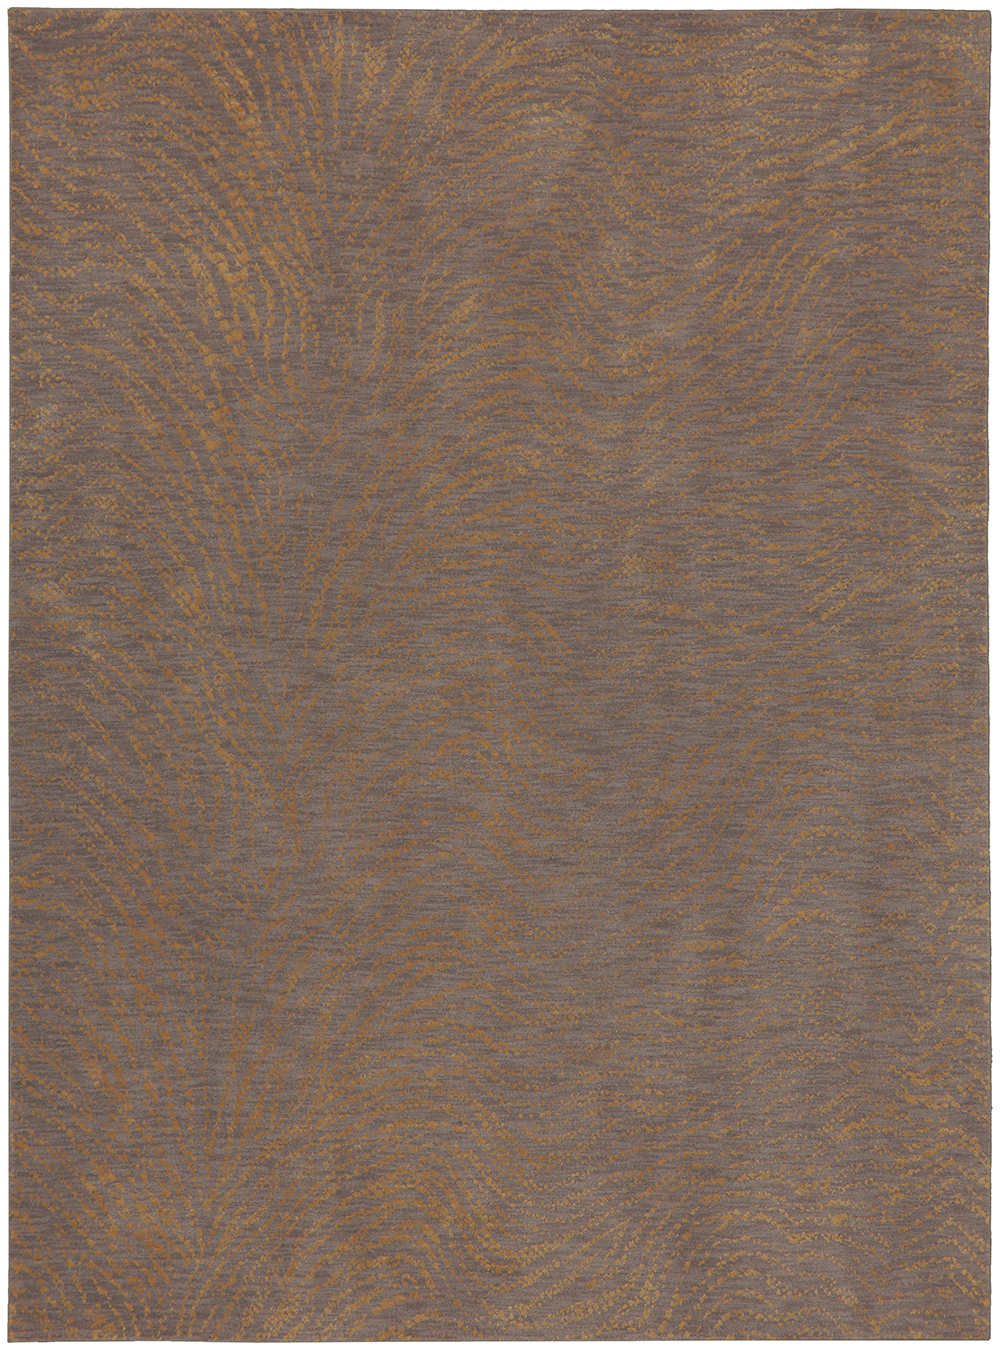 Karastan Enigma Spectral Brushed Gold Smokey Gray Rug